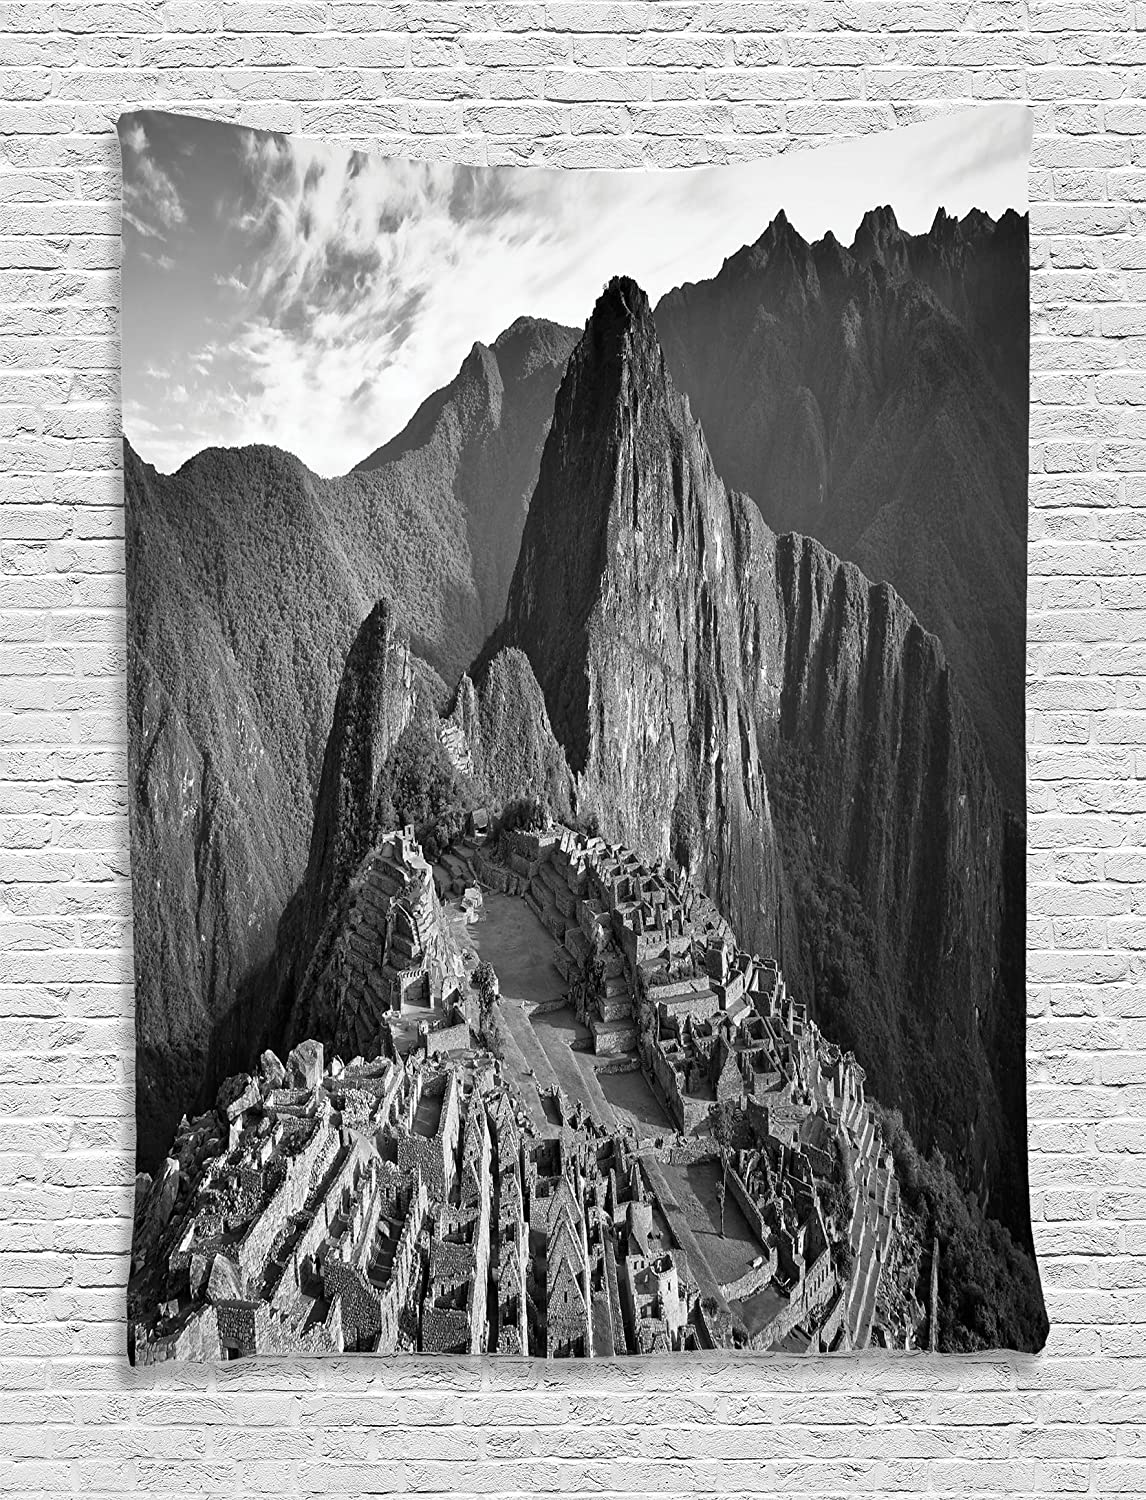 Ambesonne Black and White Tapestry, Aerial View of Peru Village Architectural Landmark Buildings Day Time, Wall Hanging for Bedroom Living Room Dorm Decor, 40